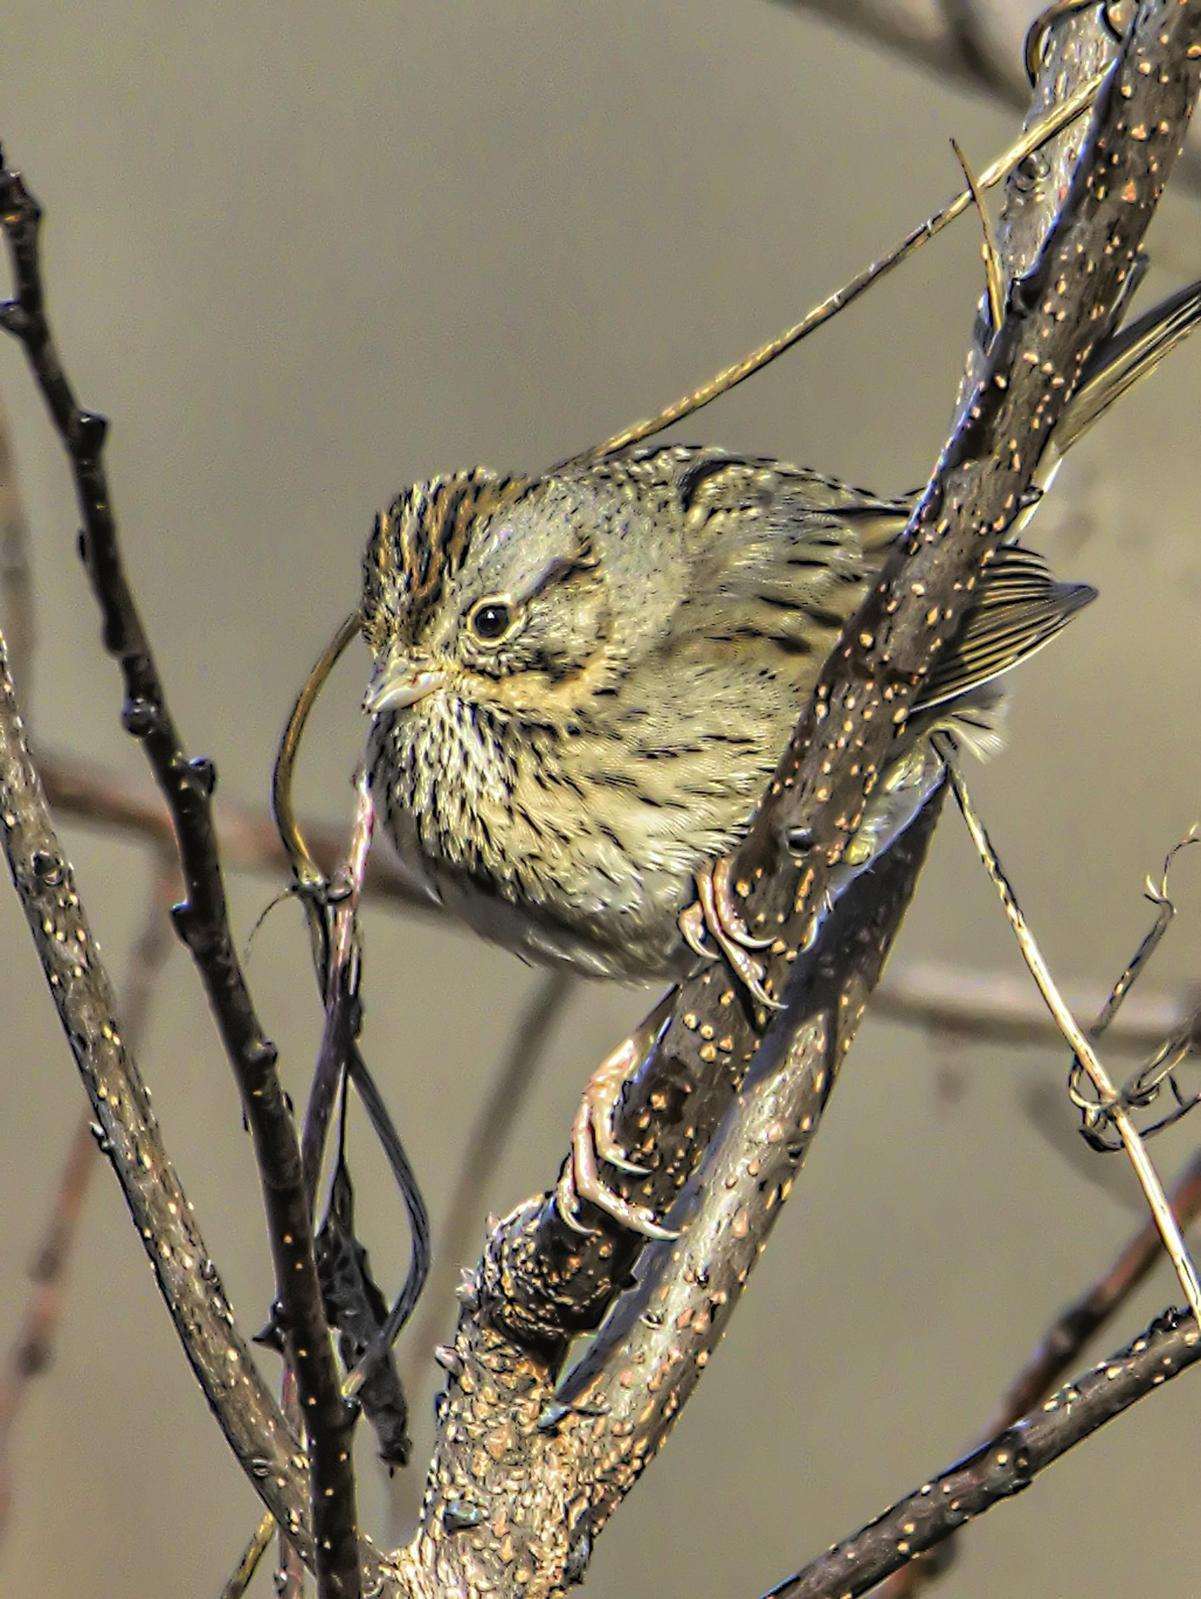 Lincoln's Sparrow Photo by Dan Tallman